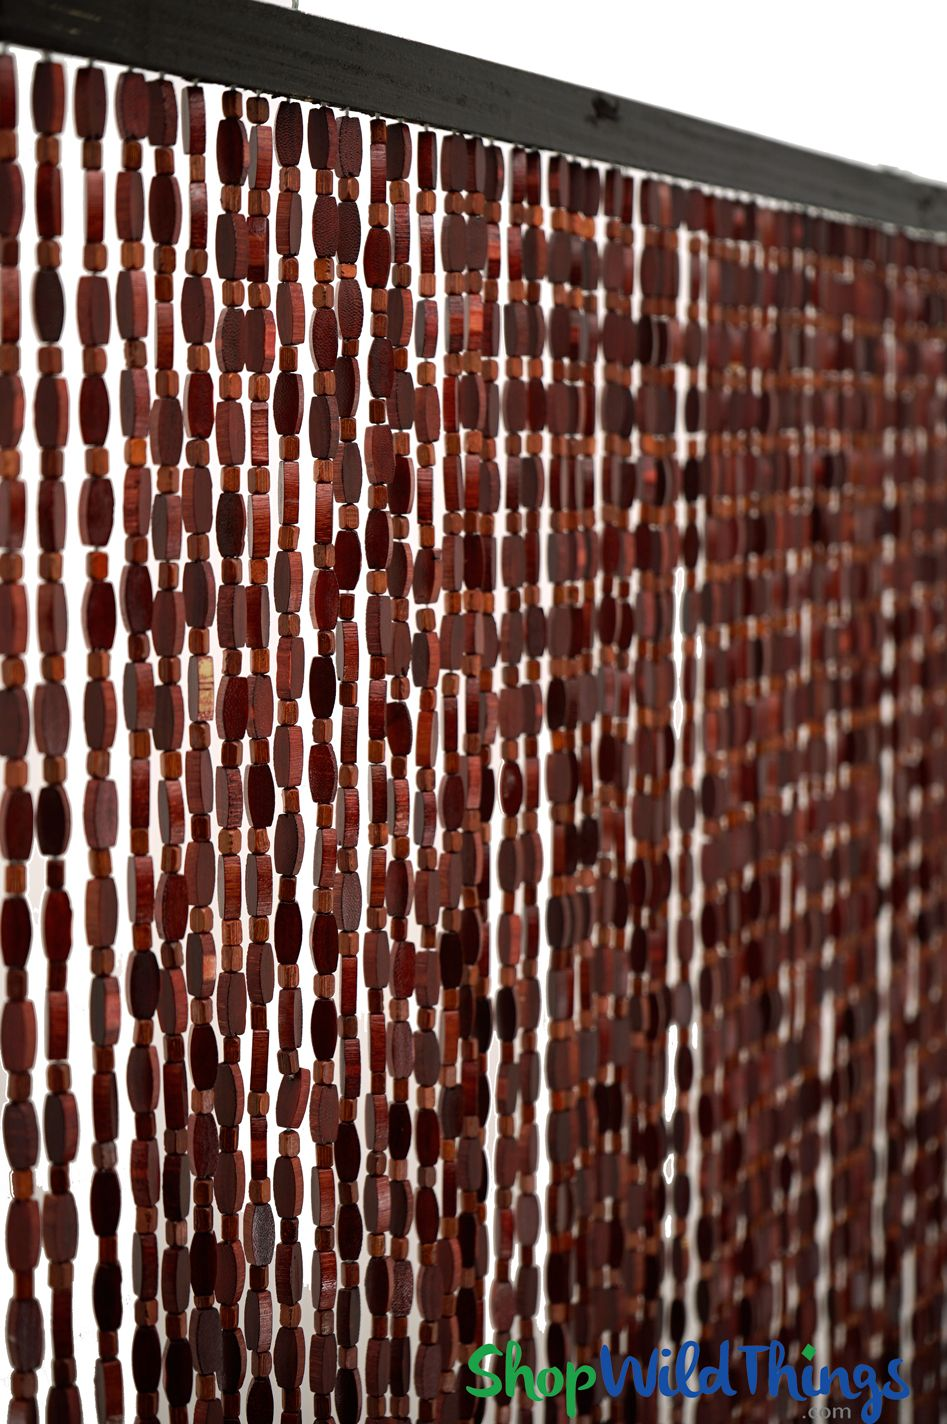 Wooden Bead Curtain Ashford Venetian Red 35 1 2 X 77 52 Strands Extra Coverage Beaded Curtains Curtains Wall Accents Decor